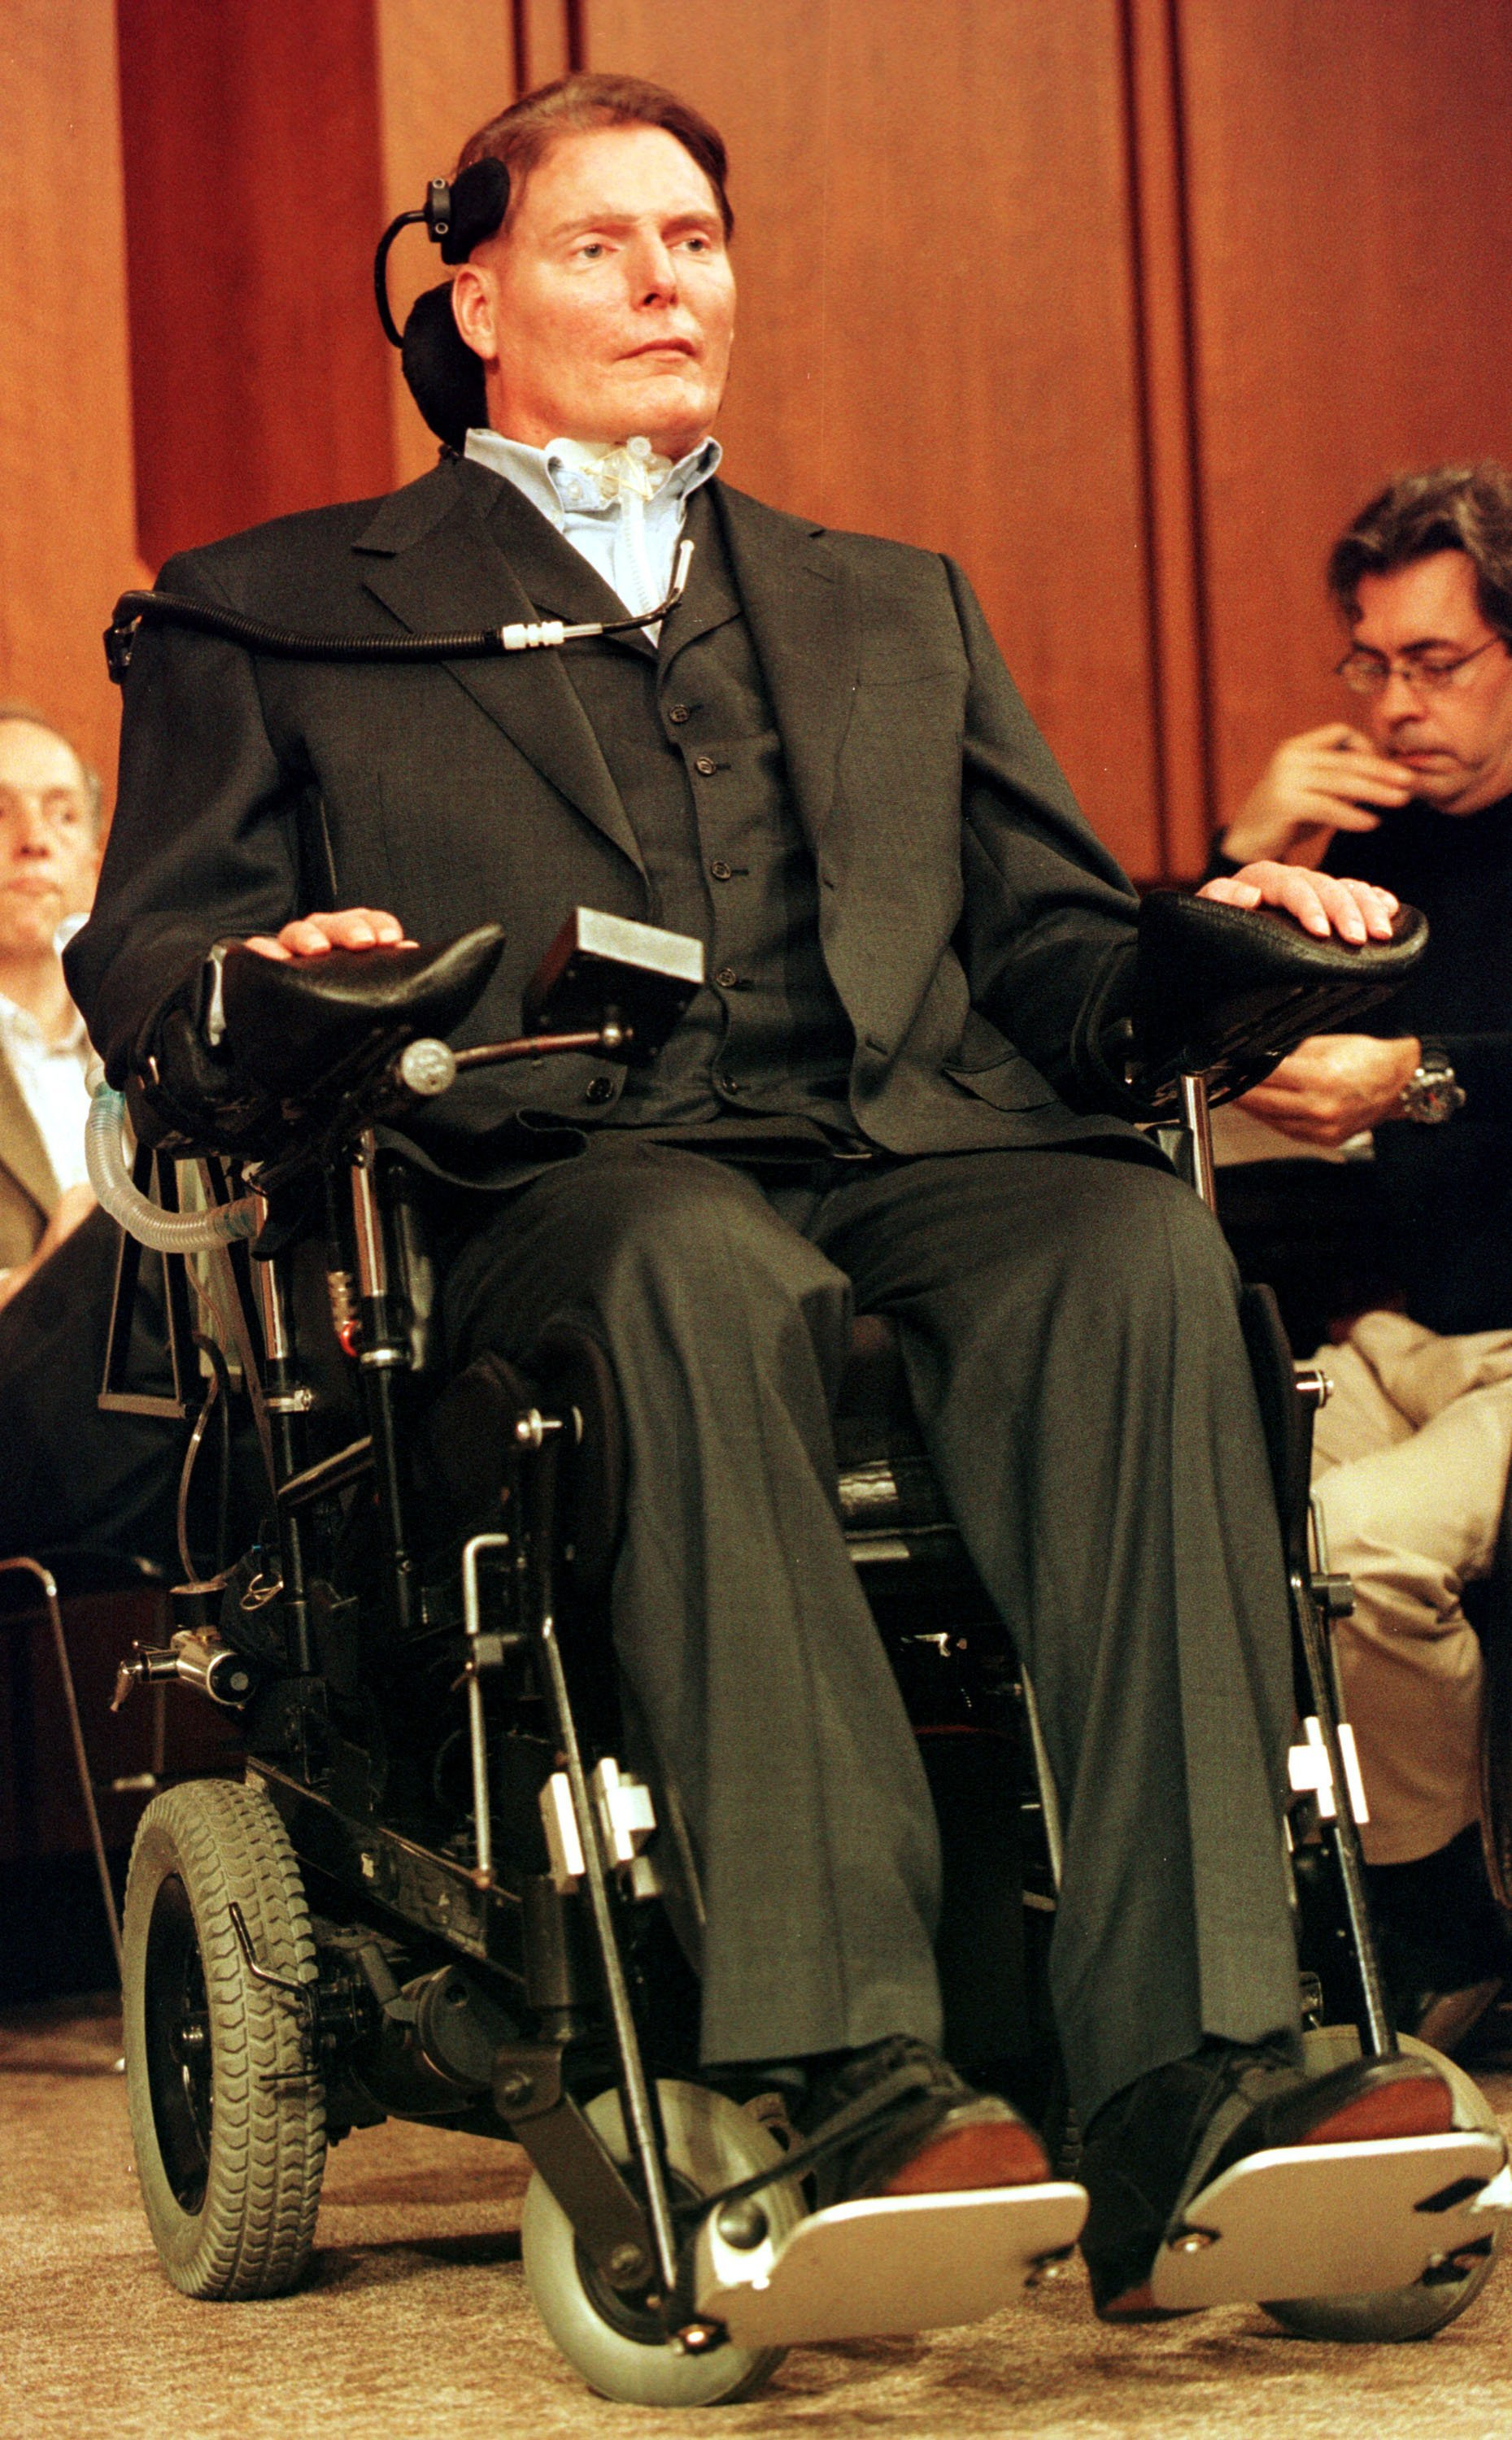 Christopher Reeve attends a hearing on stem cell research Washington, D.C. | Photo: Getty Images